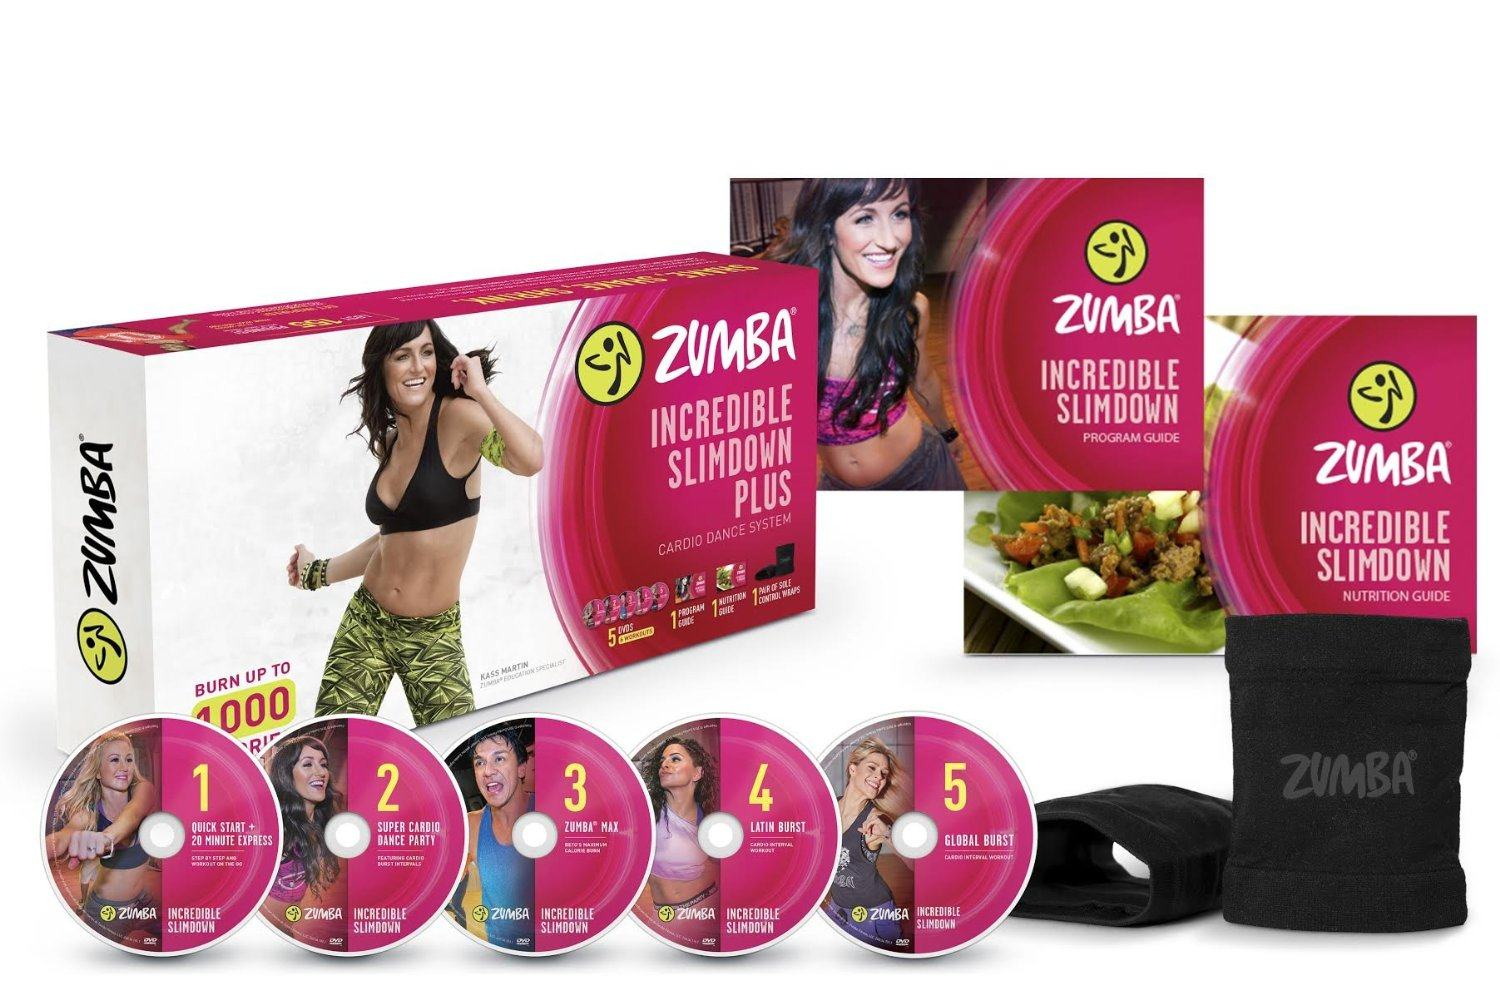 Zumba Incredible Slimdown DVD System